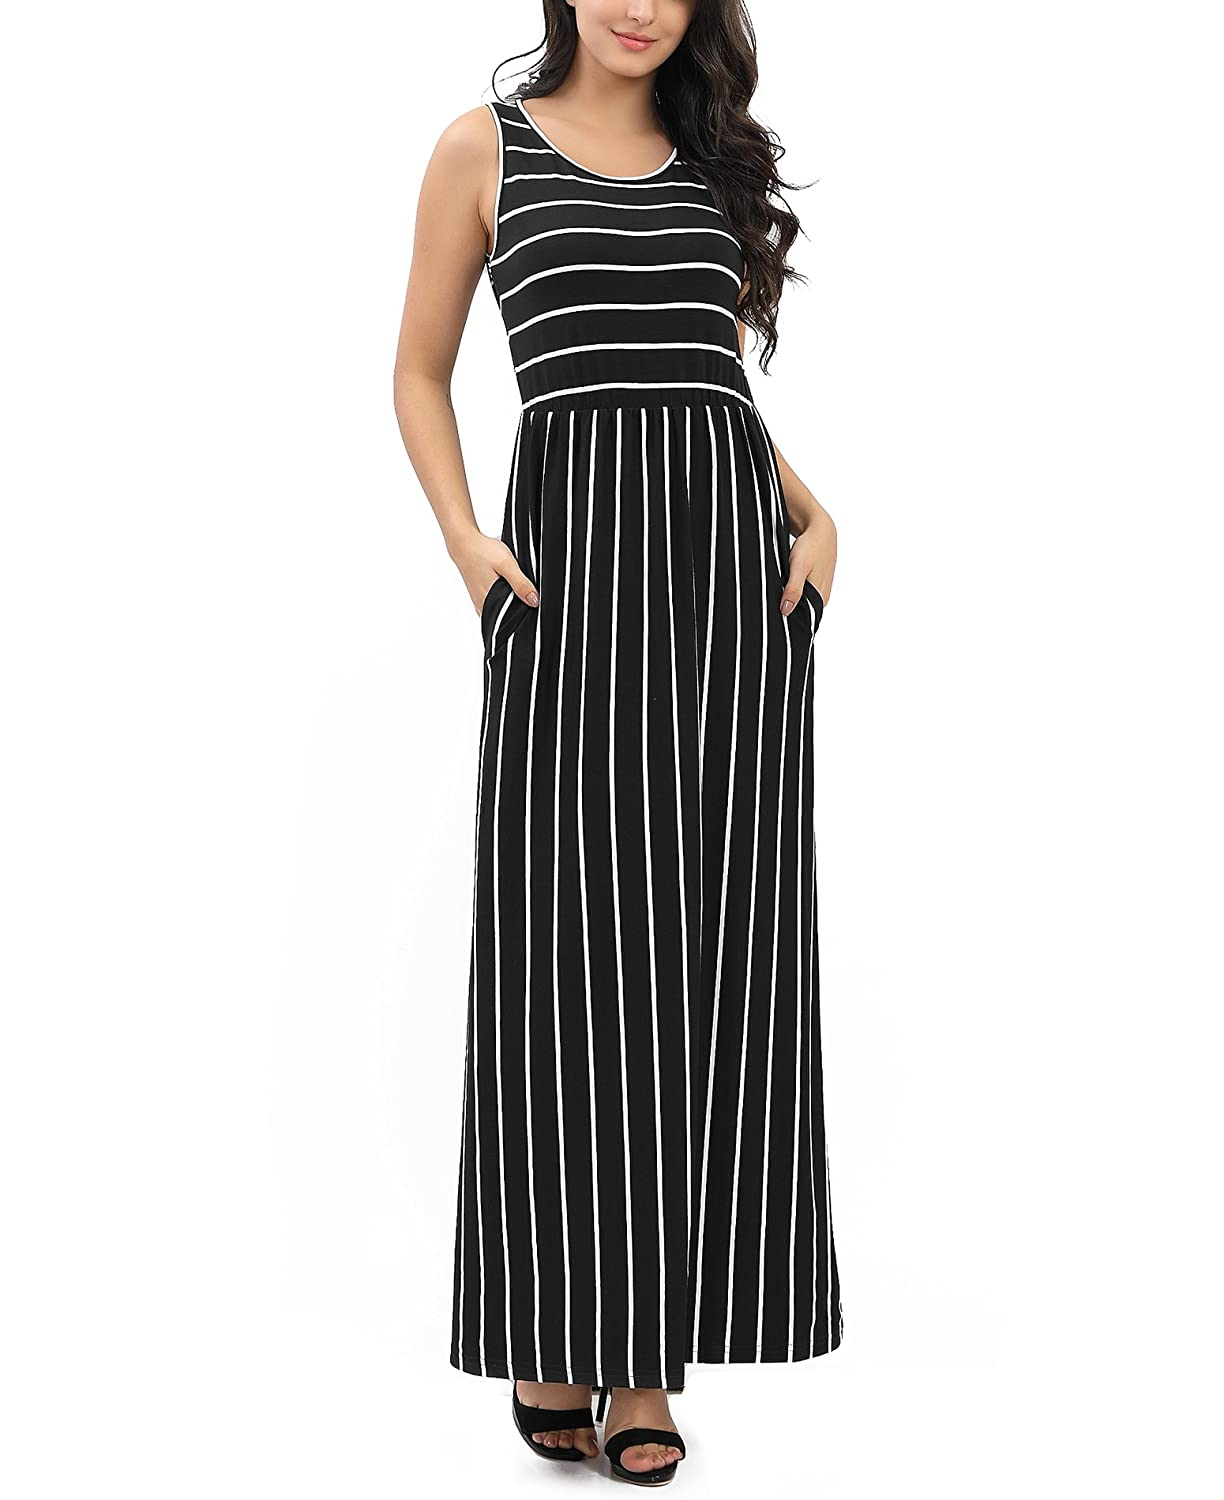 d4c556c635 ROOSEY Women's Summer Sleeveless Striped Round Neck Long Casual Maxi Dress  with Pockets at Amazon Women's Clothing store: